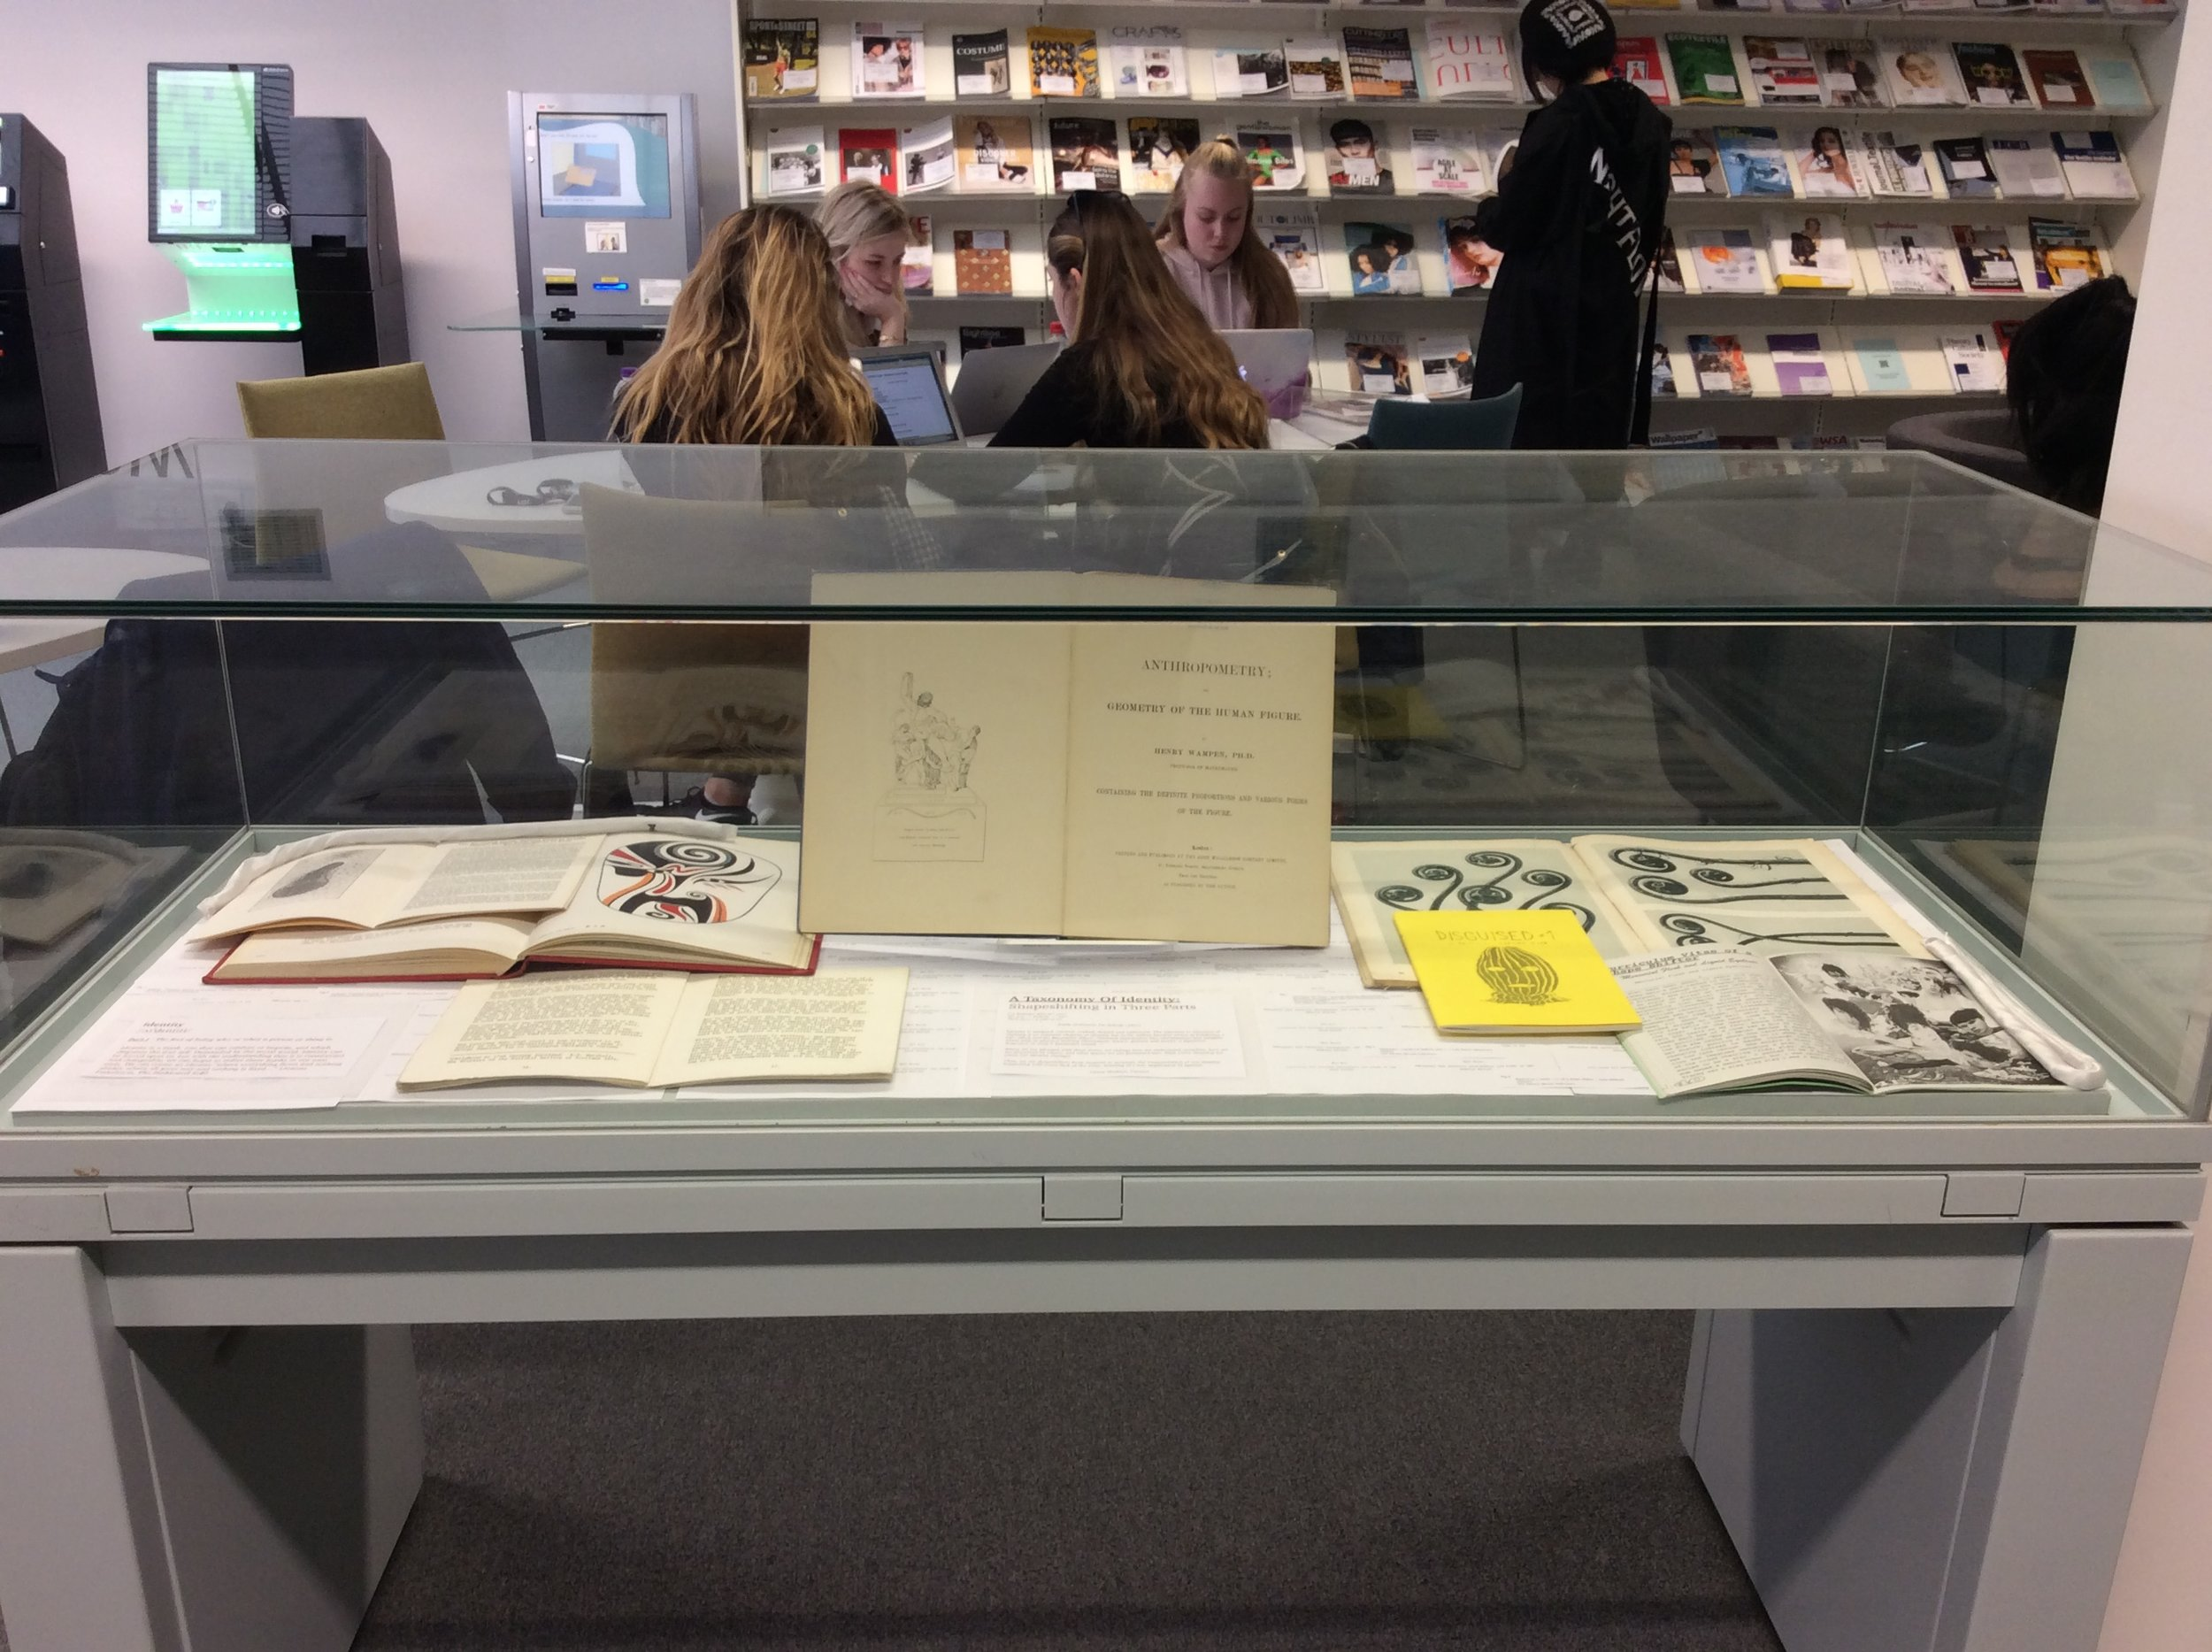 A Taxonomy Of Identity: Shapeshifting in Three Parts  , an exhibition of rare materials from London College of Fashion Library's Special Collections curated by Cyana Madsen (May - June 2018)